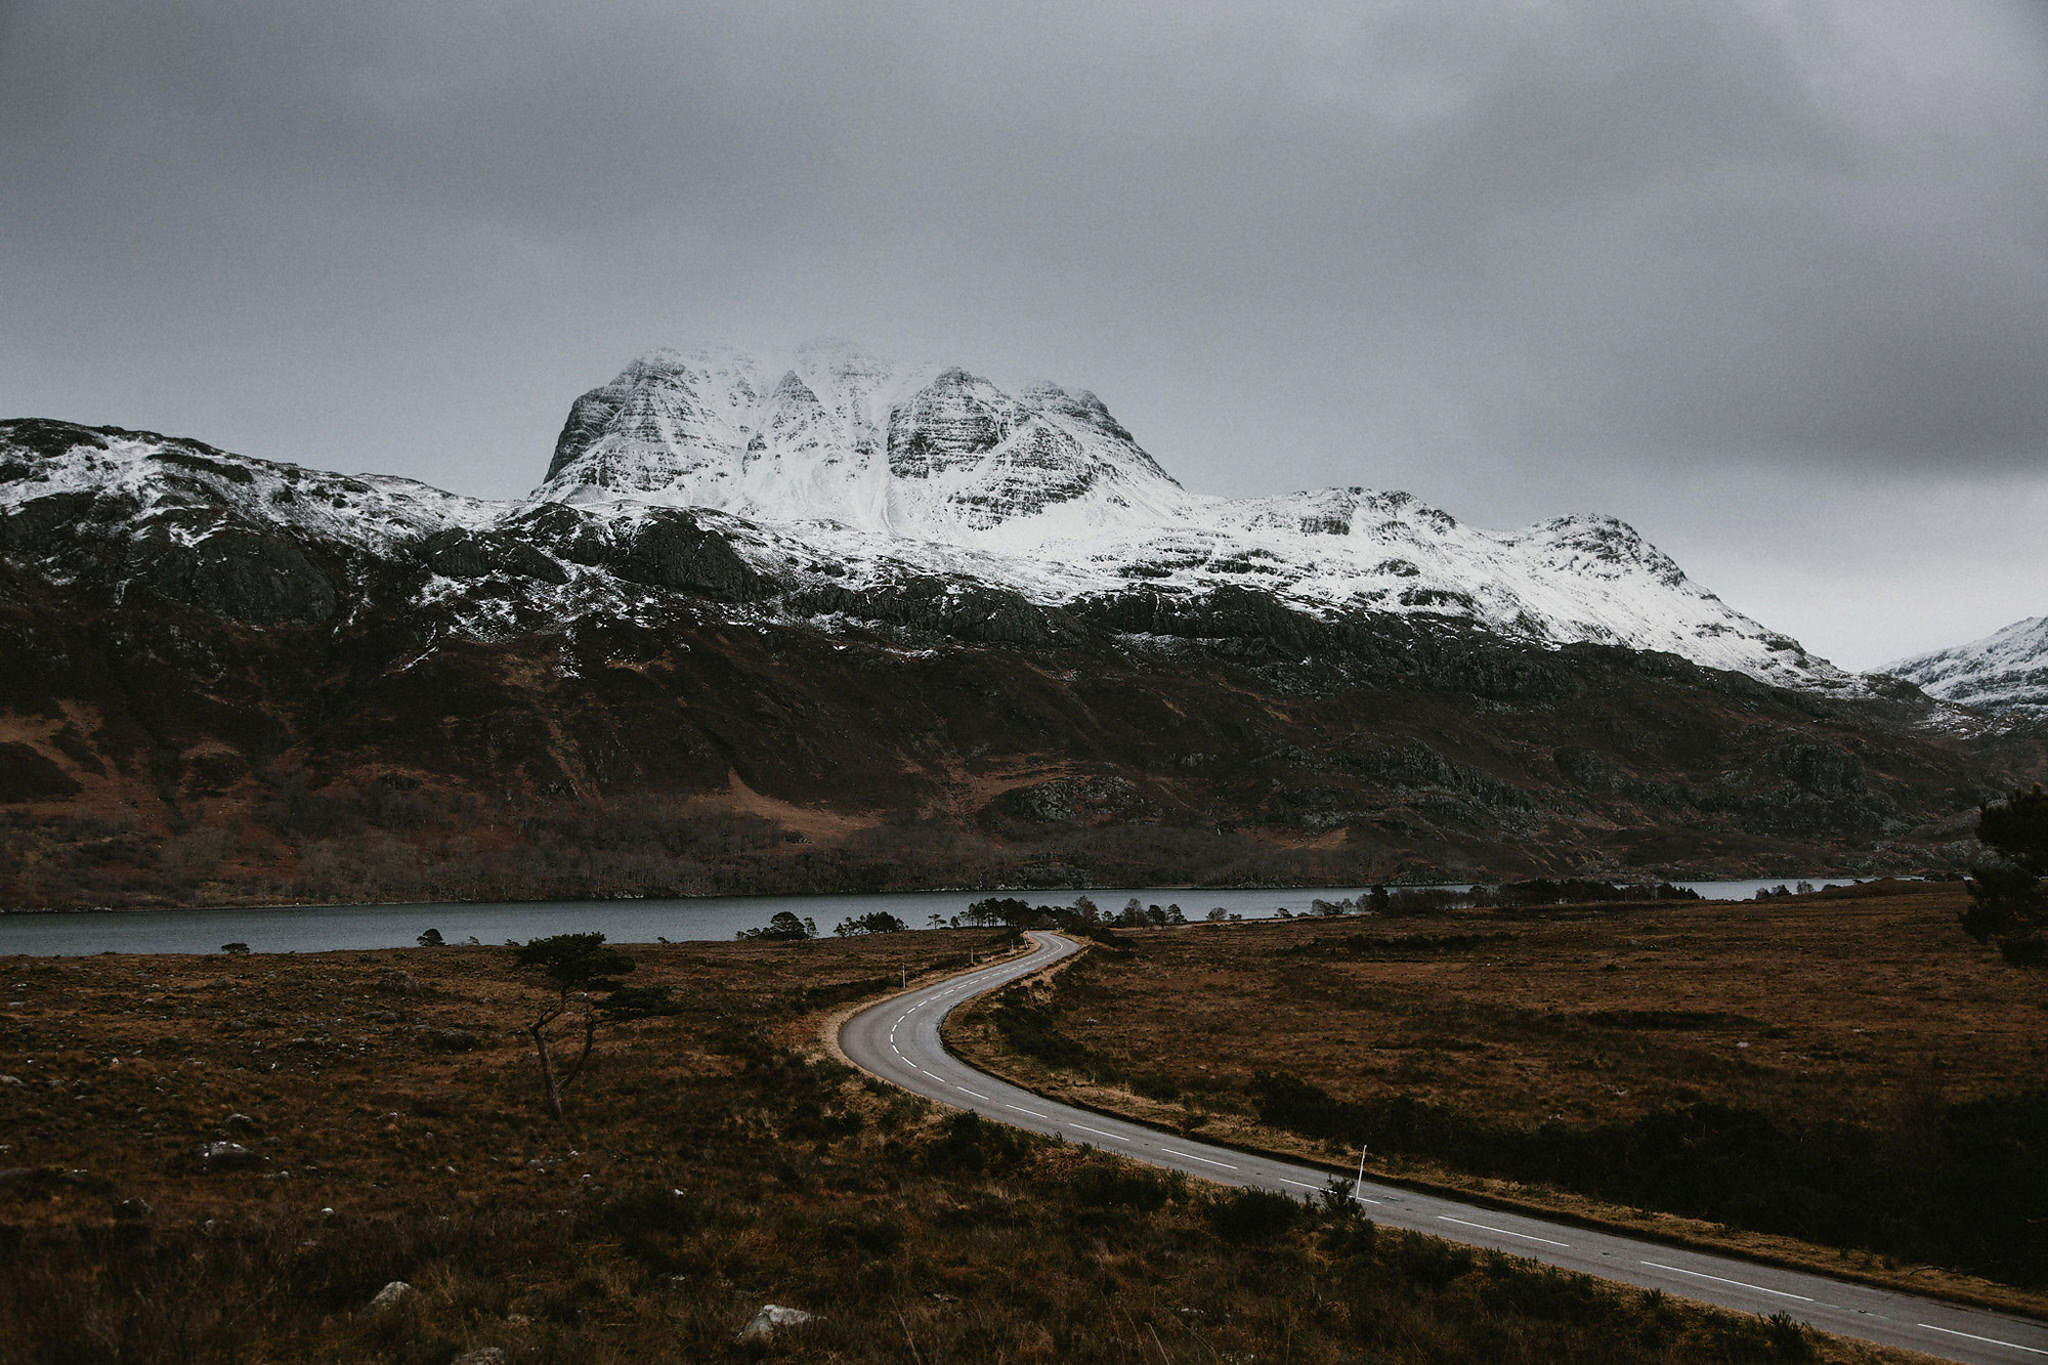 Elopement locations in Scotland Wester Ross landscape road running through snow covered mountains